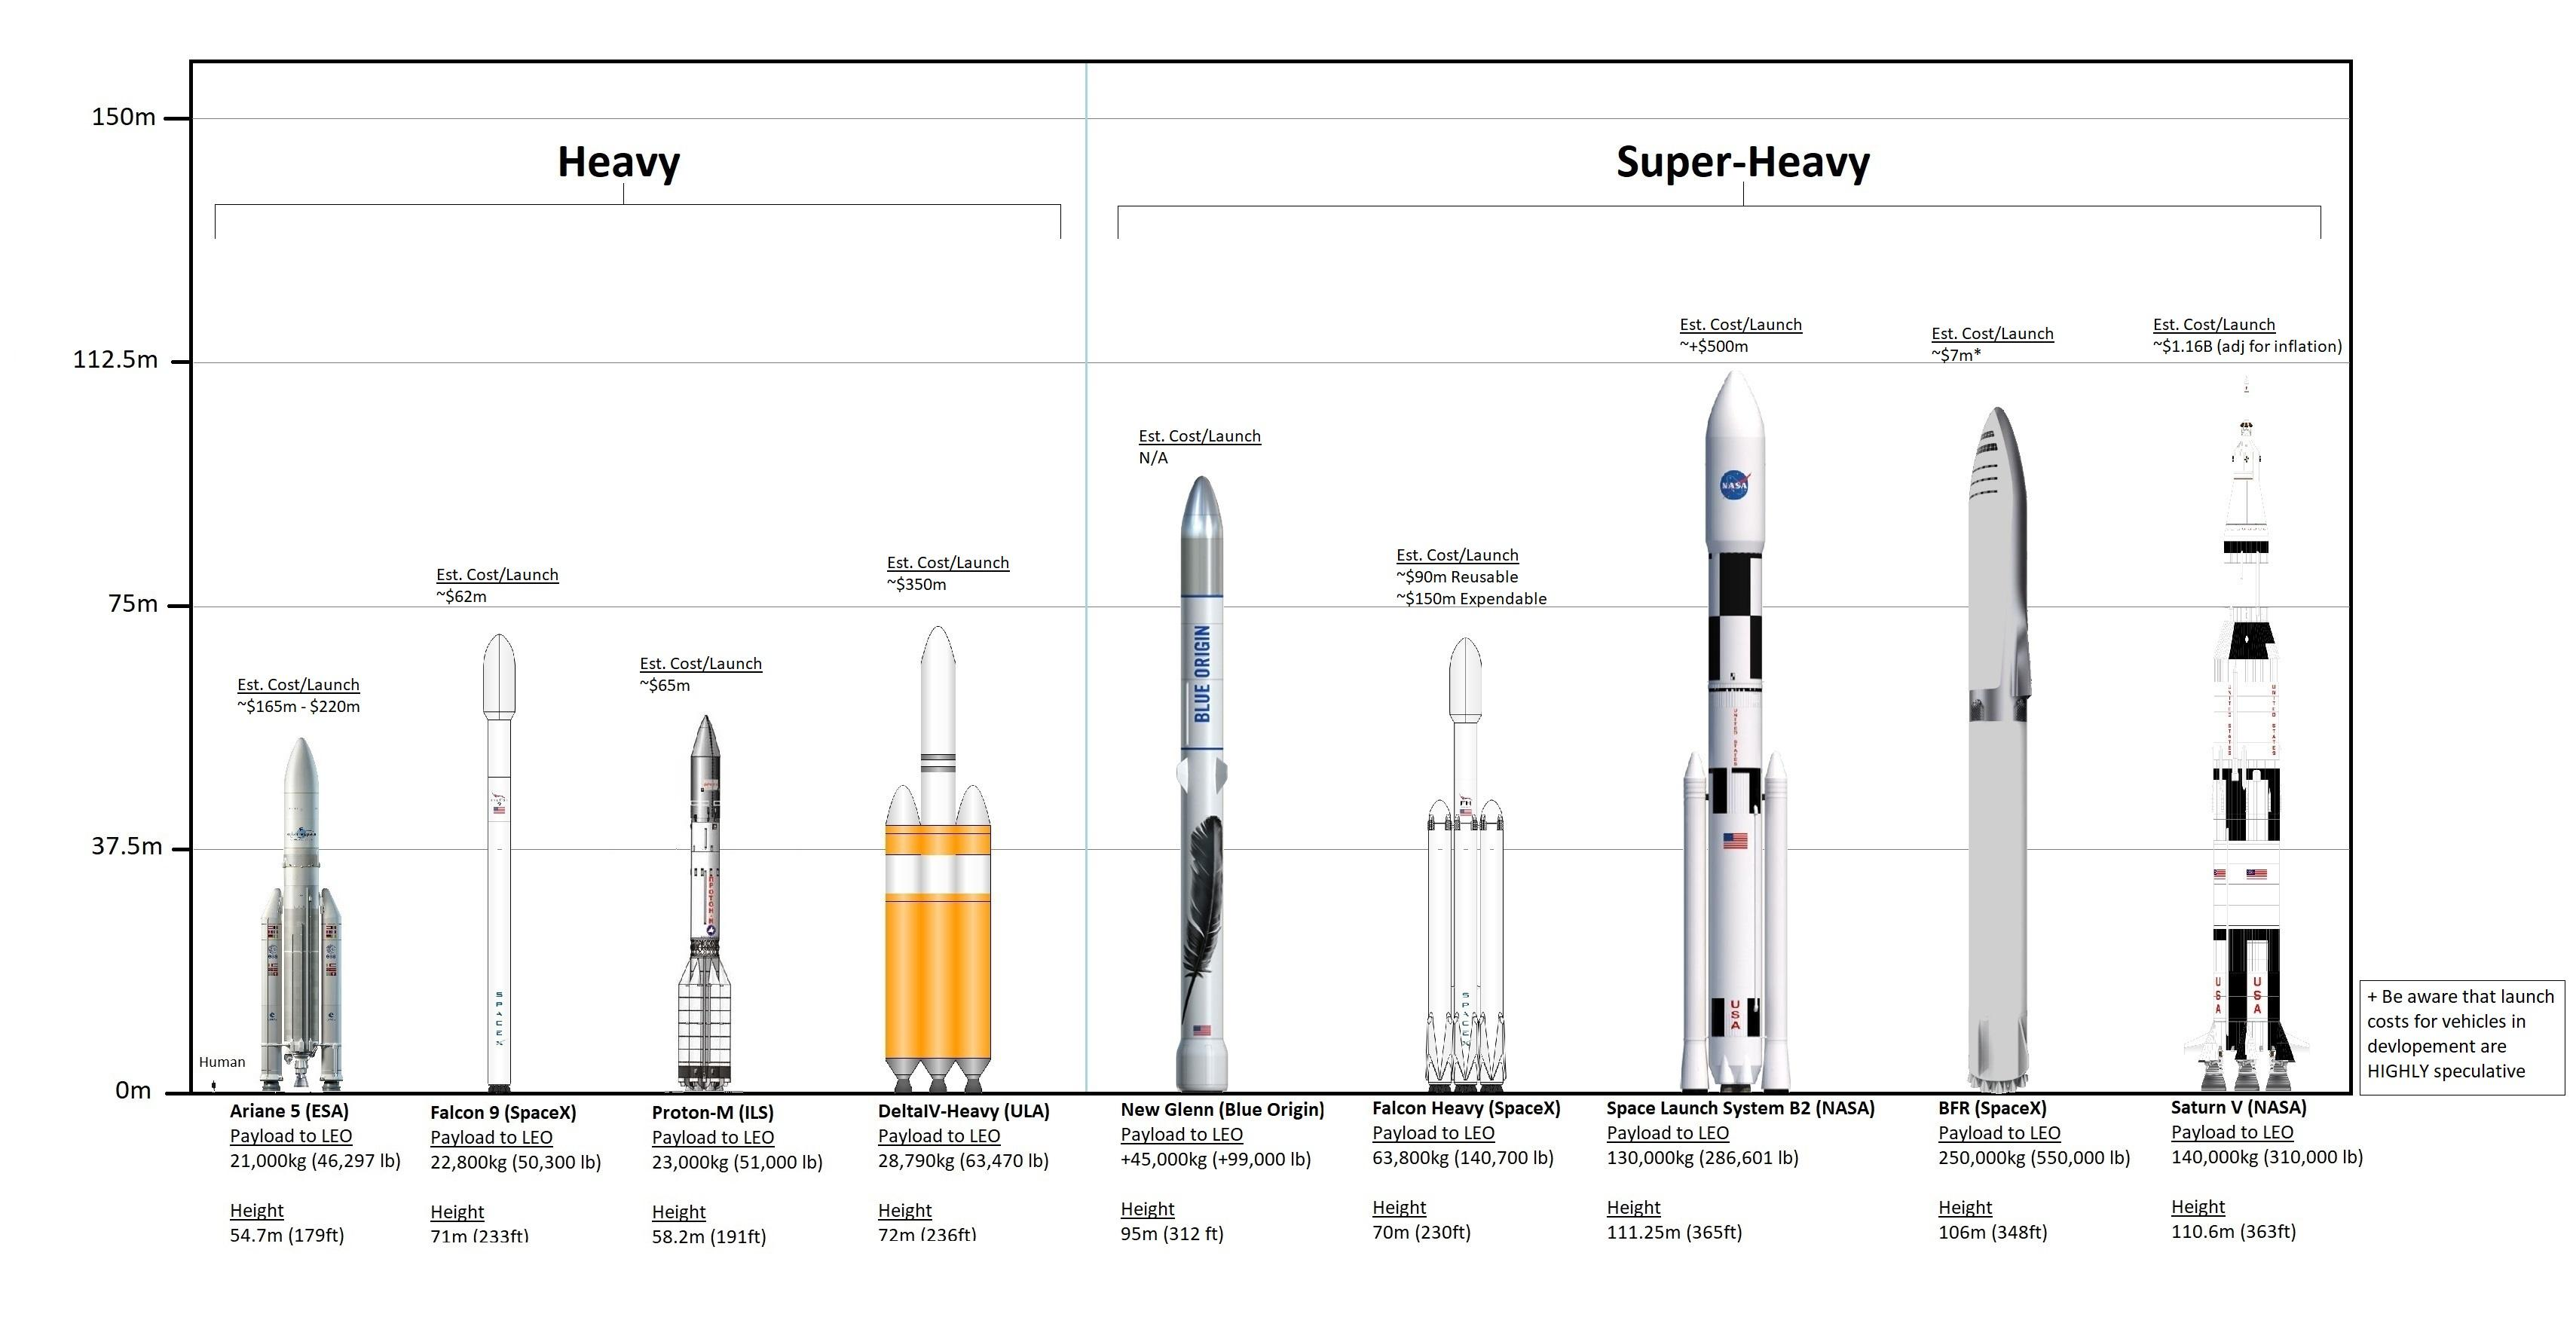 real rocket ship diagram shear and moment problems chart comparing current in development rockets how they stack up to the falcon bfr vehicles